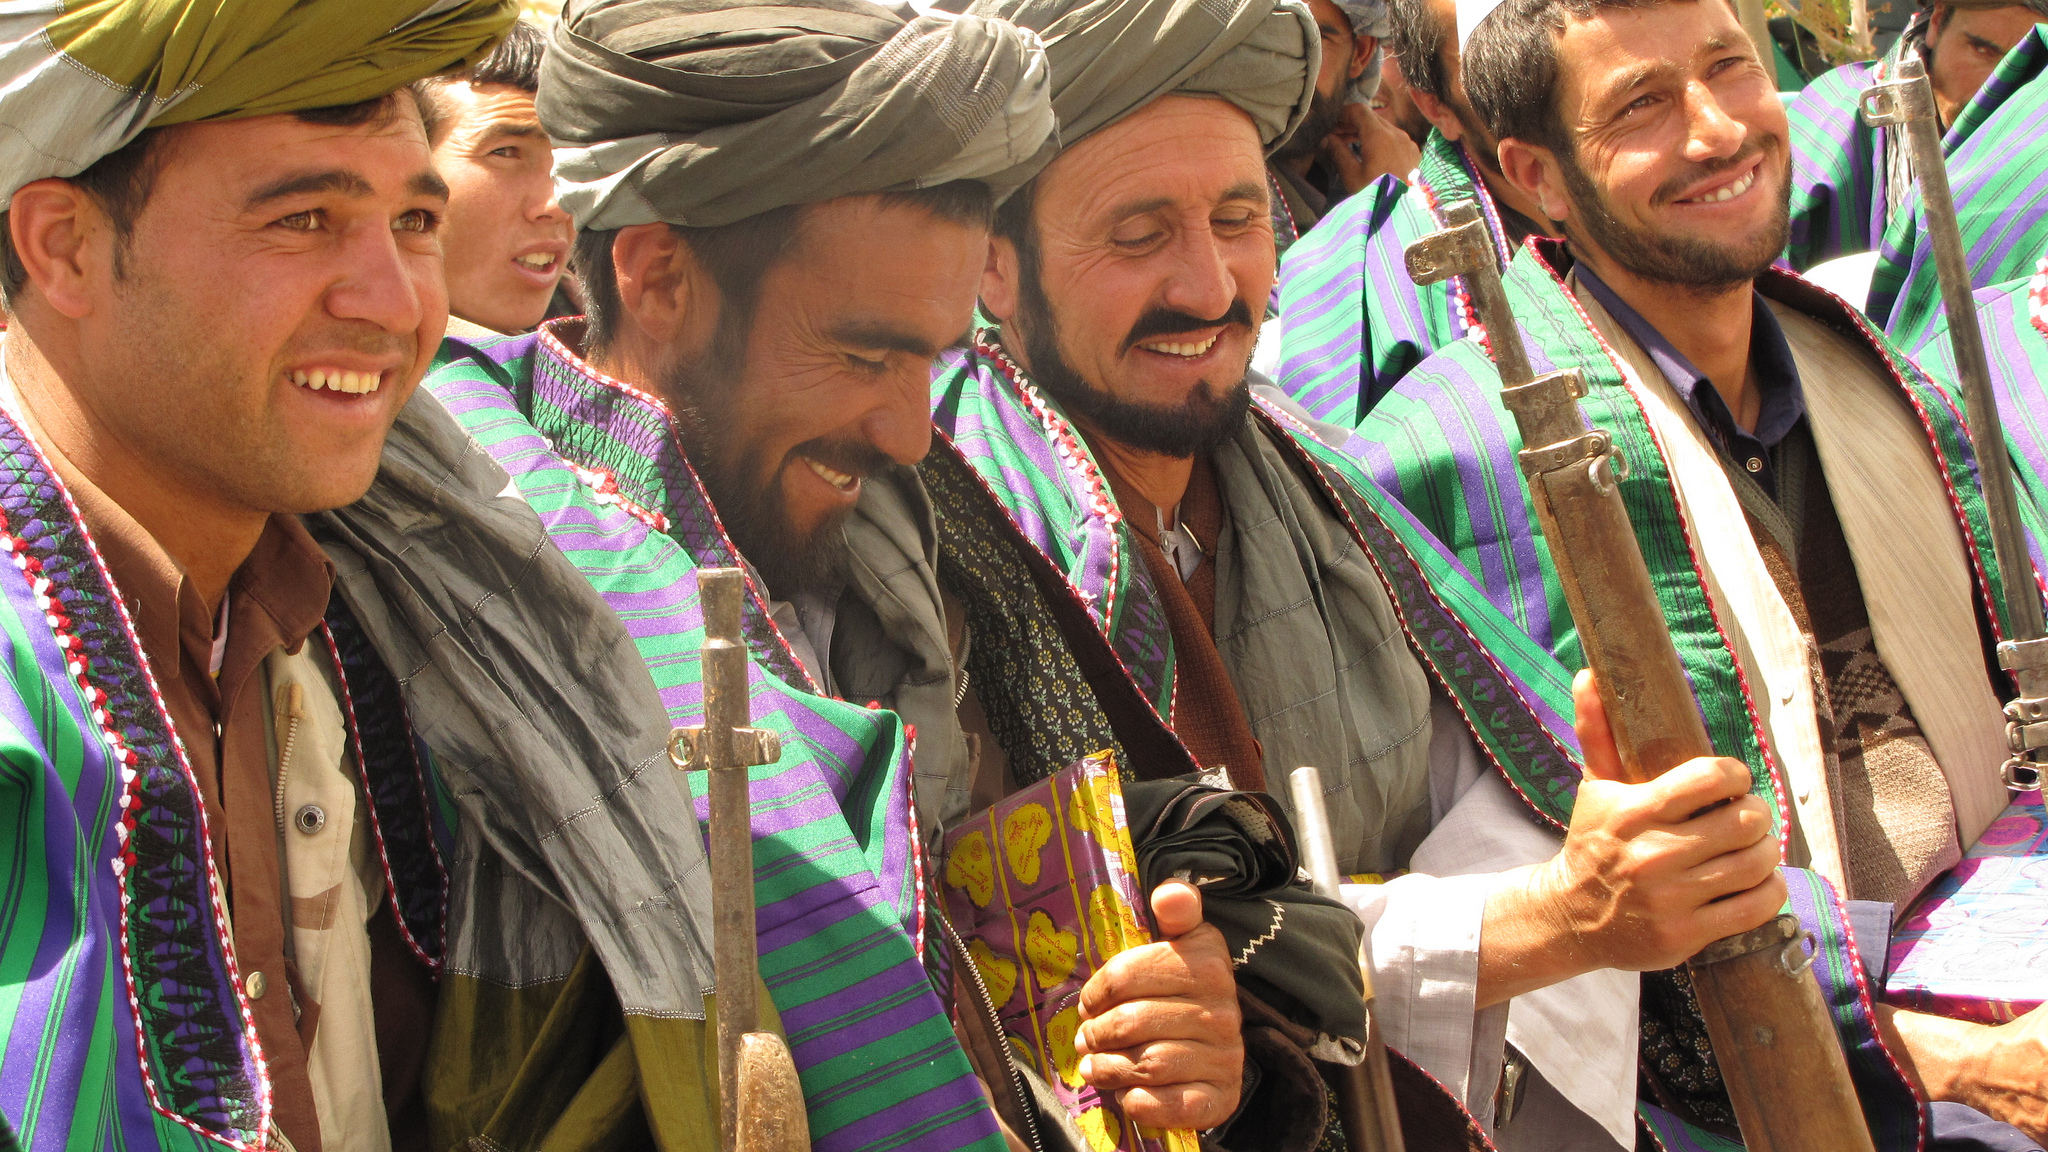 GHŌR, Afghanistan (May 28, 2012) – Former Taliban fighters hold rifles as they prepare to hand them over to the Government of the Islamic Republic of Afghanistan during a reintegration ceremony at the provincial governor's compound.